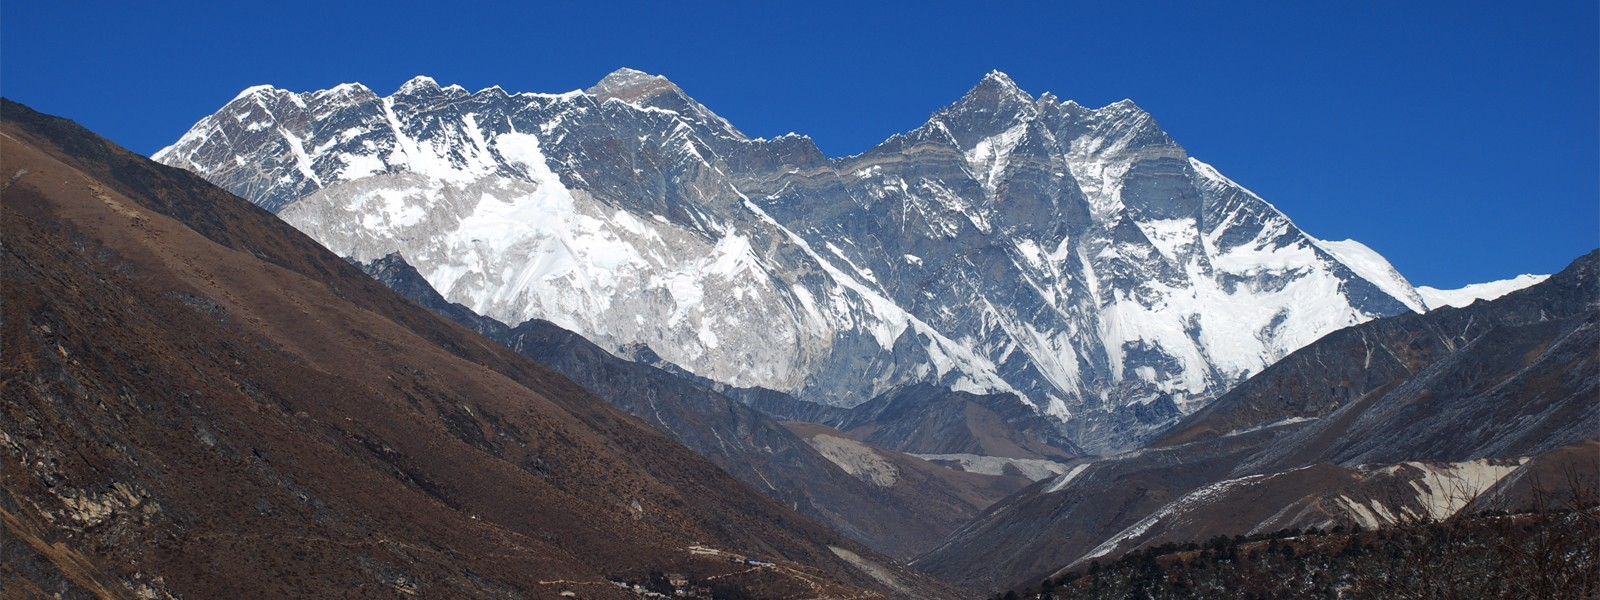 Everest Base Camp Trekking in Khumbu Region